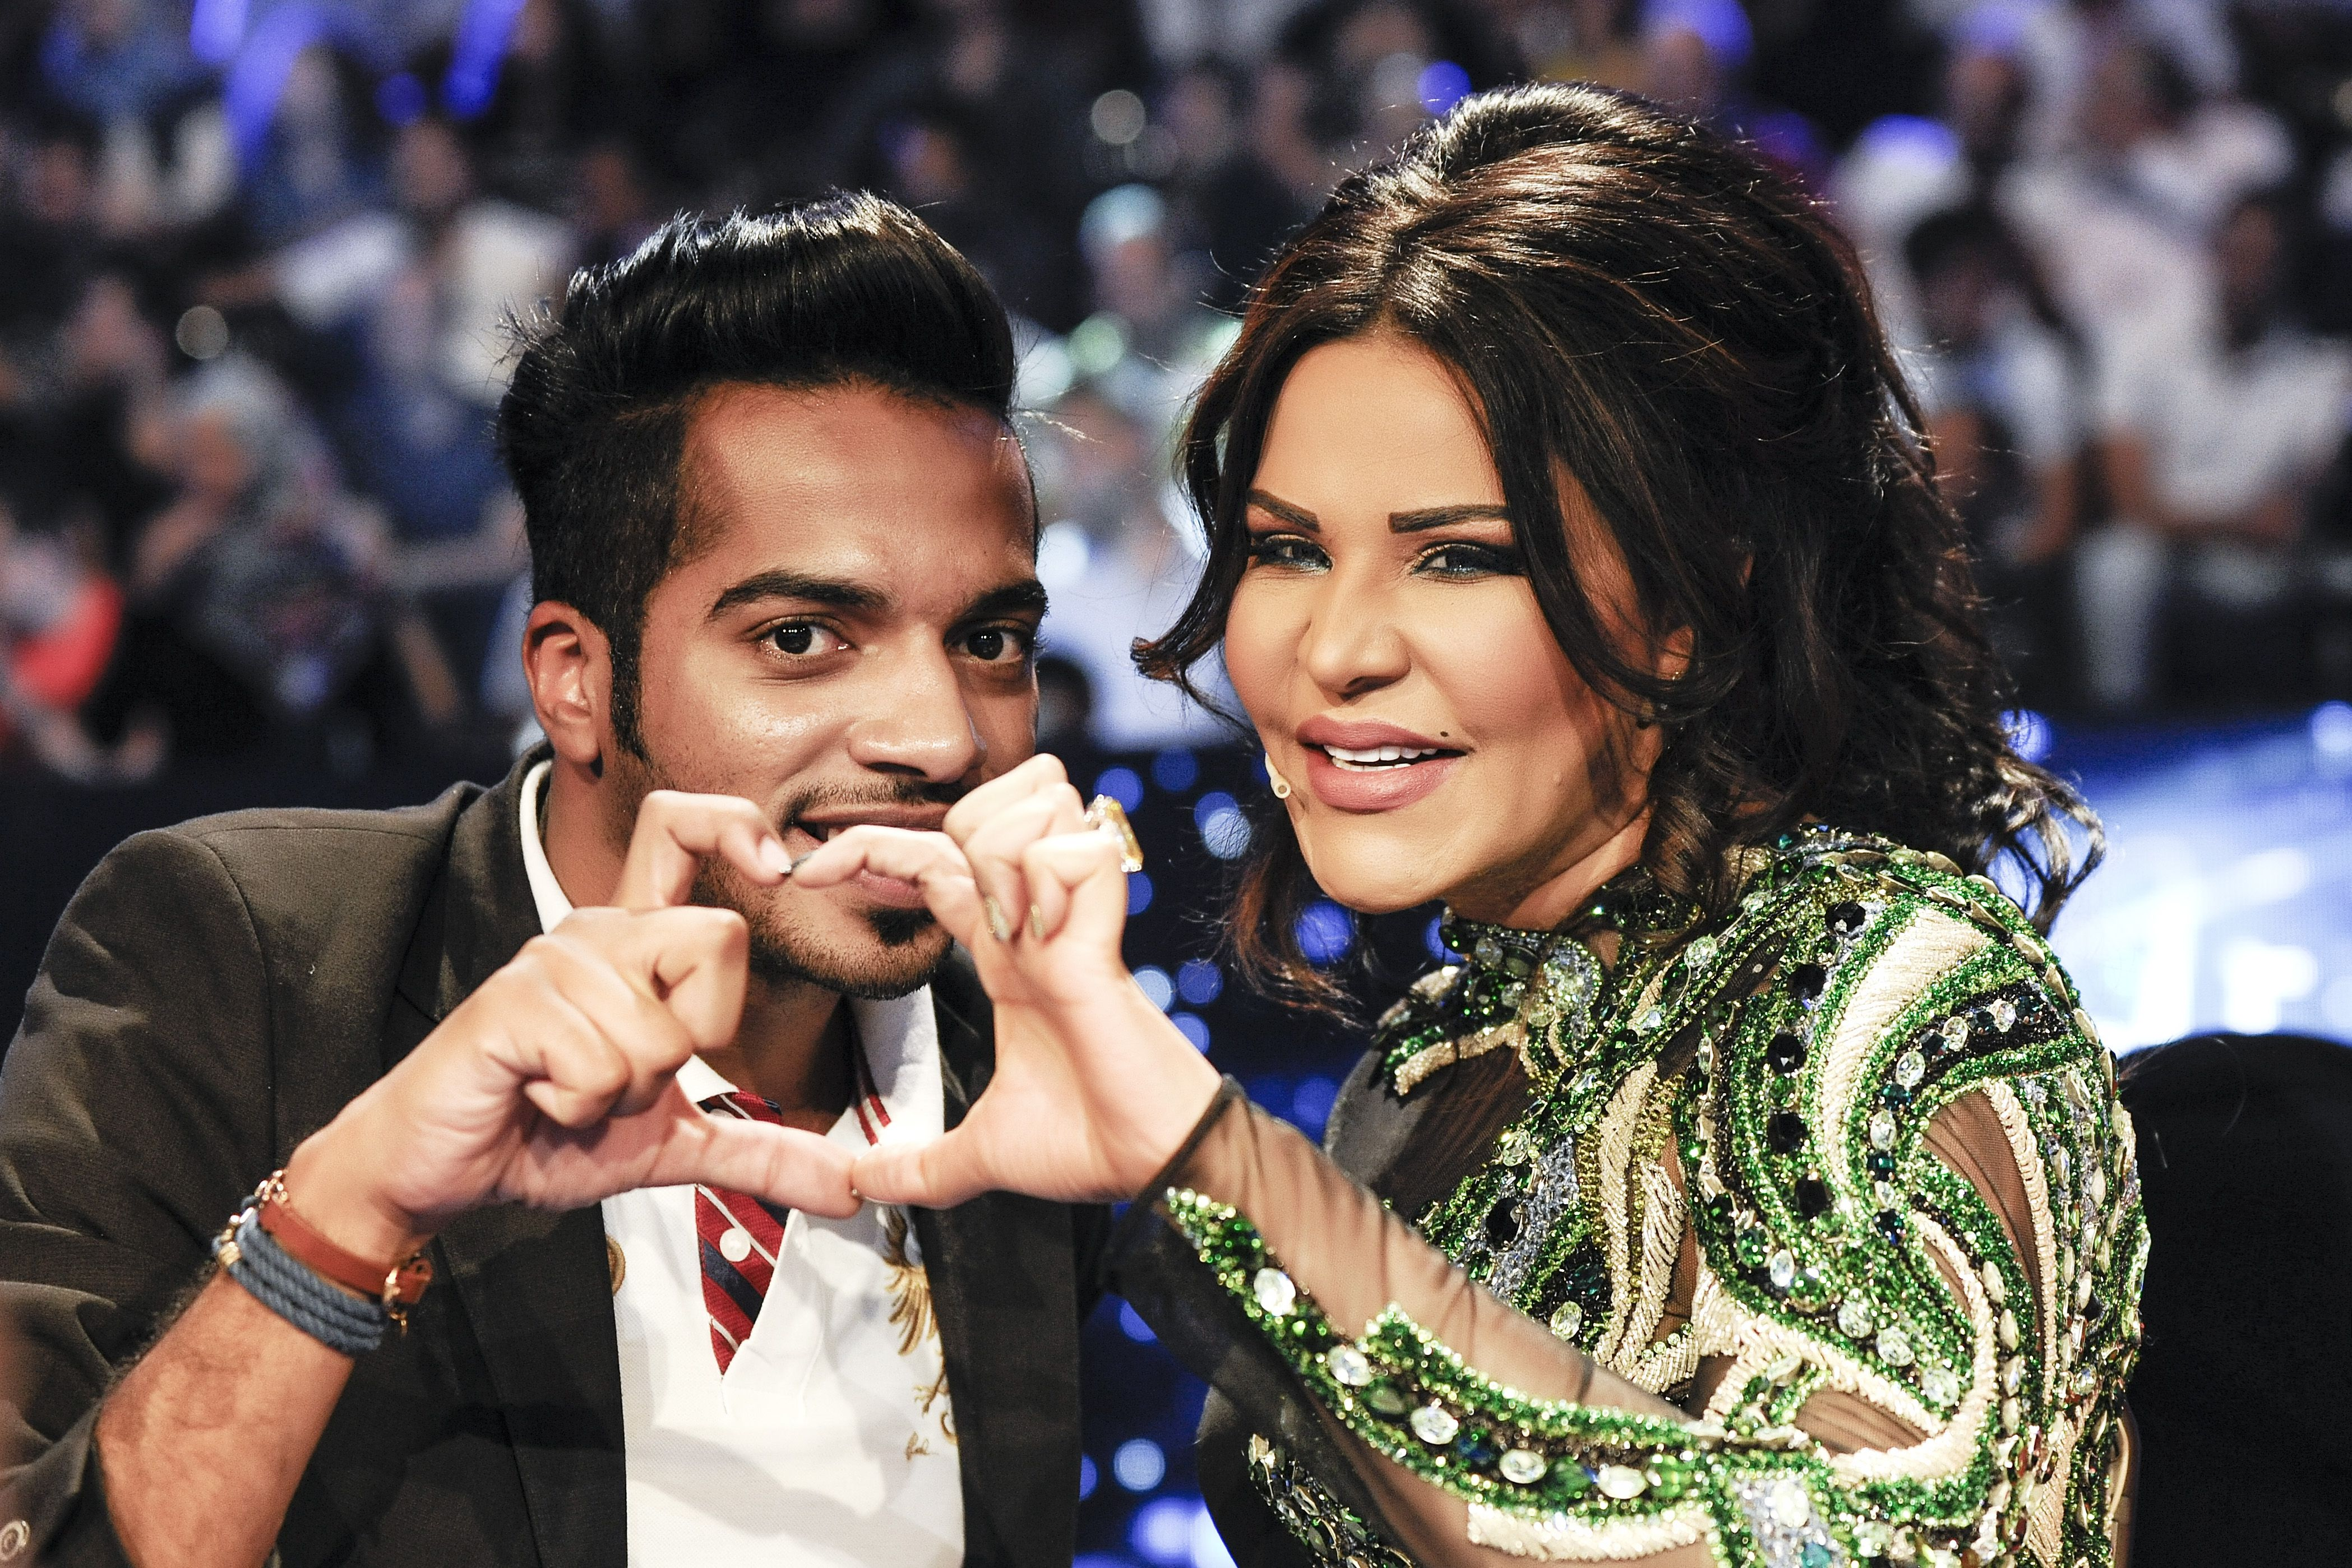 Ahlam Fans, ارب ايدول